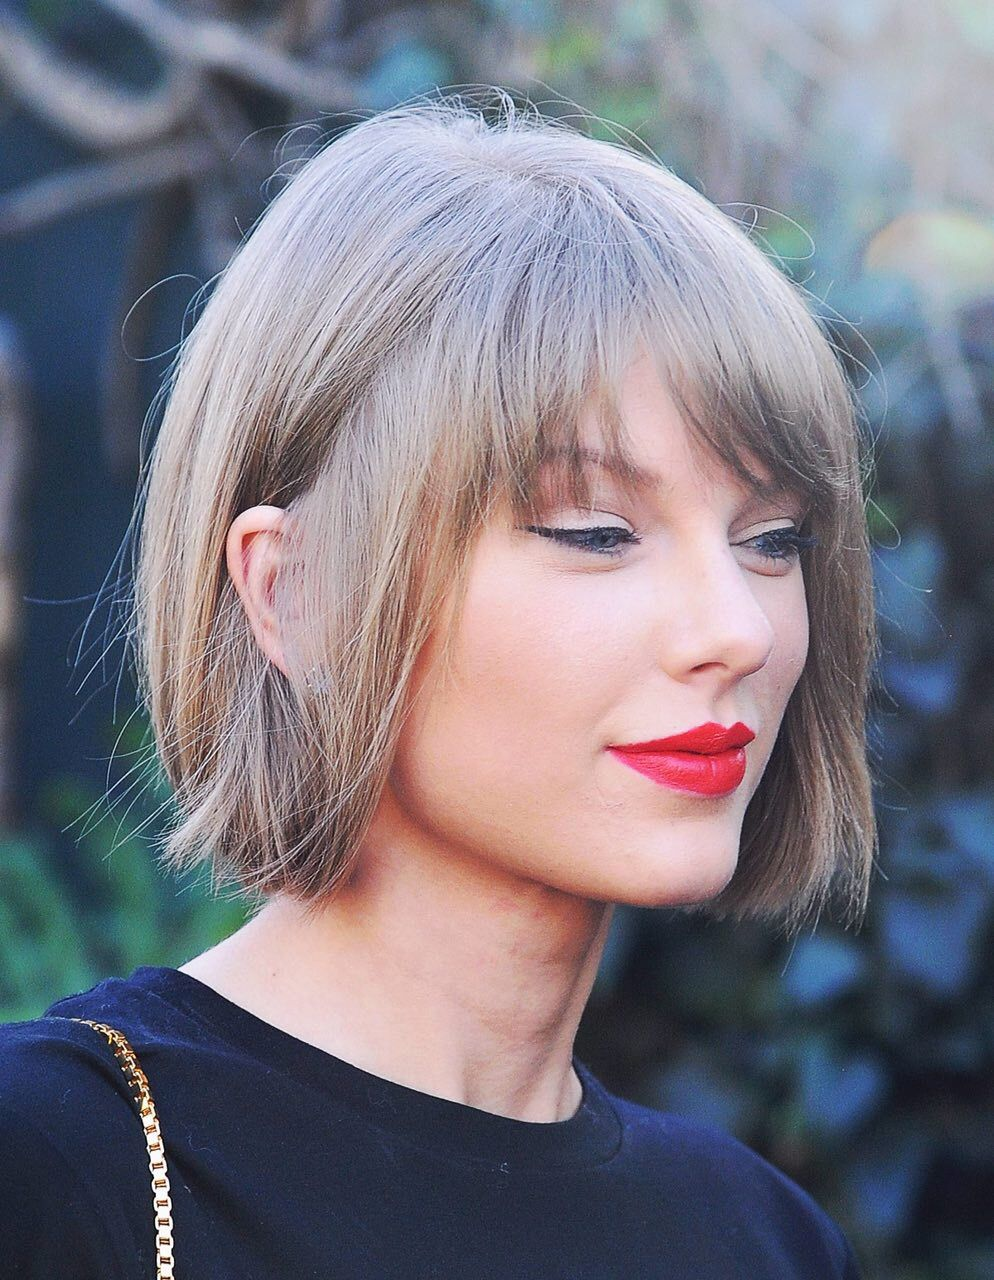 Pin By Jane Lock On Perfect Humans Taylor Swift Short Hair Taylor Swift Haircut Taylor Swift Hair